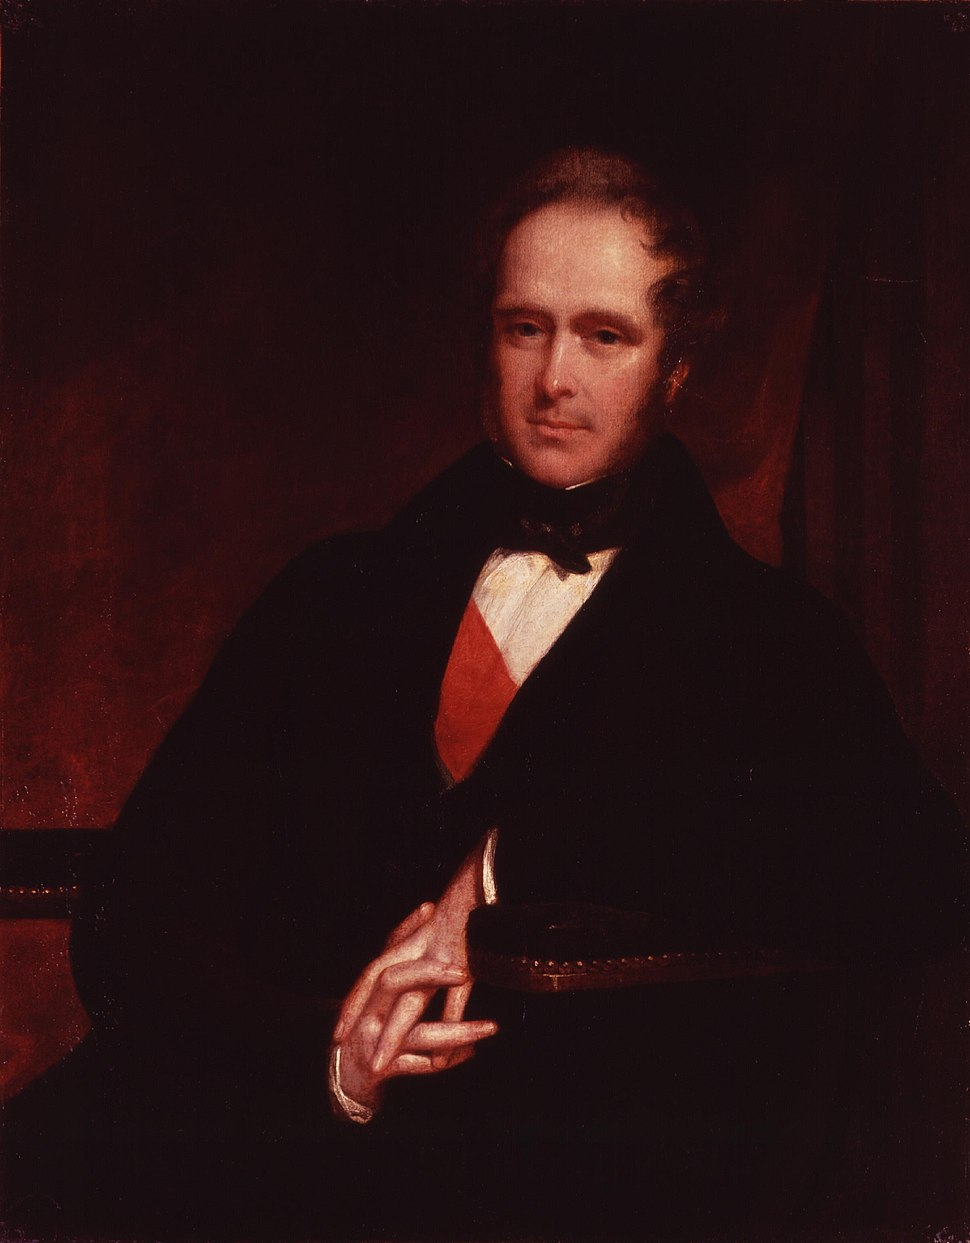 Henry John Temple, 3rd Viscount Palmerston by John Partridge